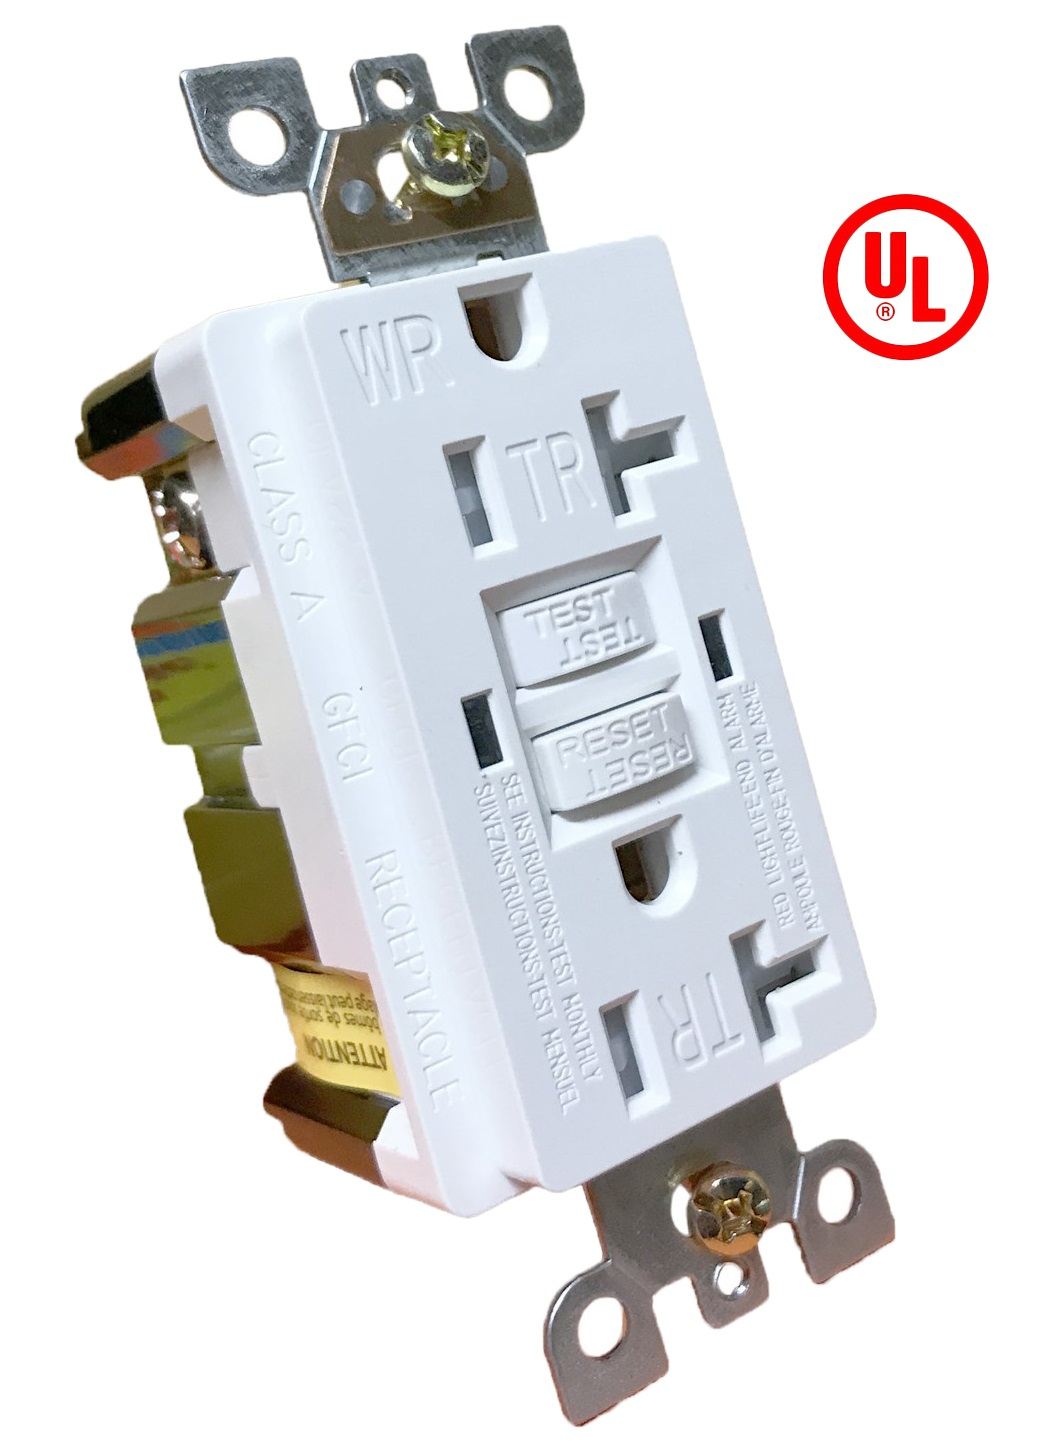 Electrical Devices Ground Fault Circuit Interrupter Receptacle Tr Gfci How To Test